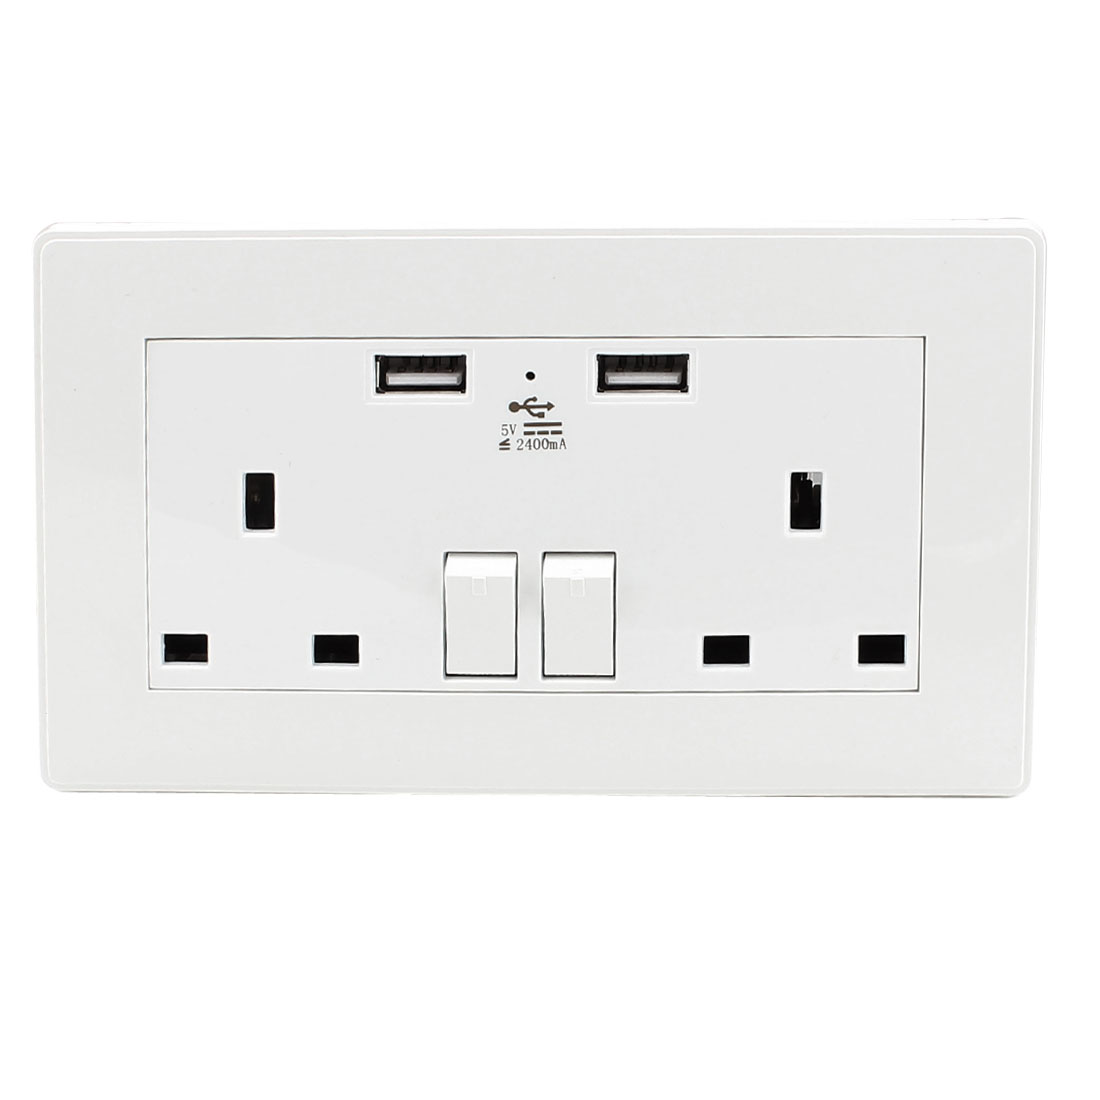 Dual AC 110V-250V UK Socket 2 USB Port Charging DC 5V 2400mA Mains Power Switch Wall Outlet